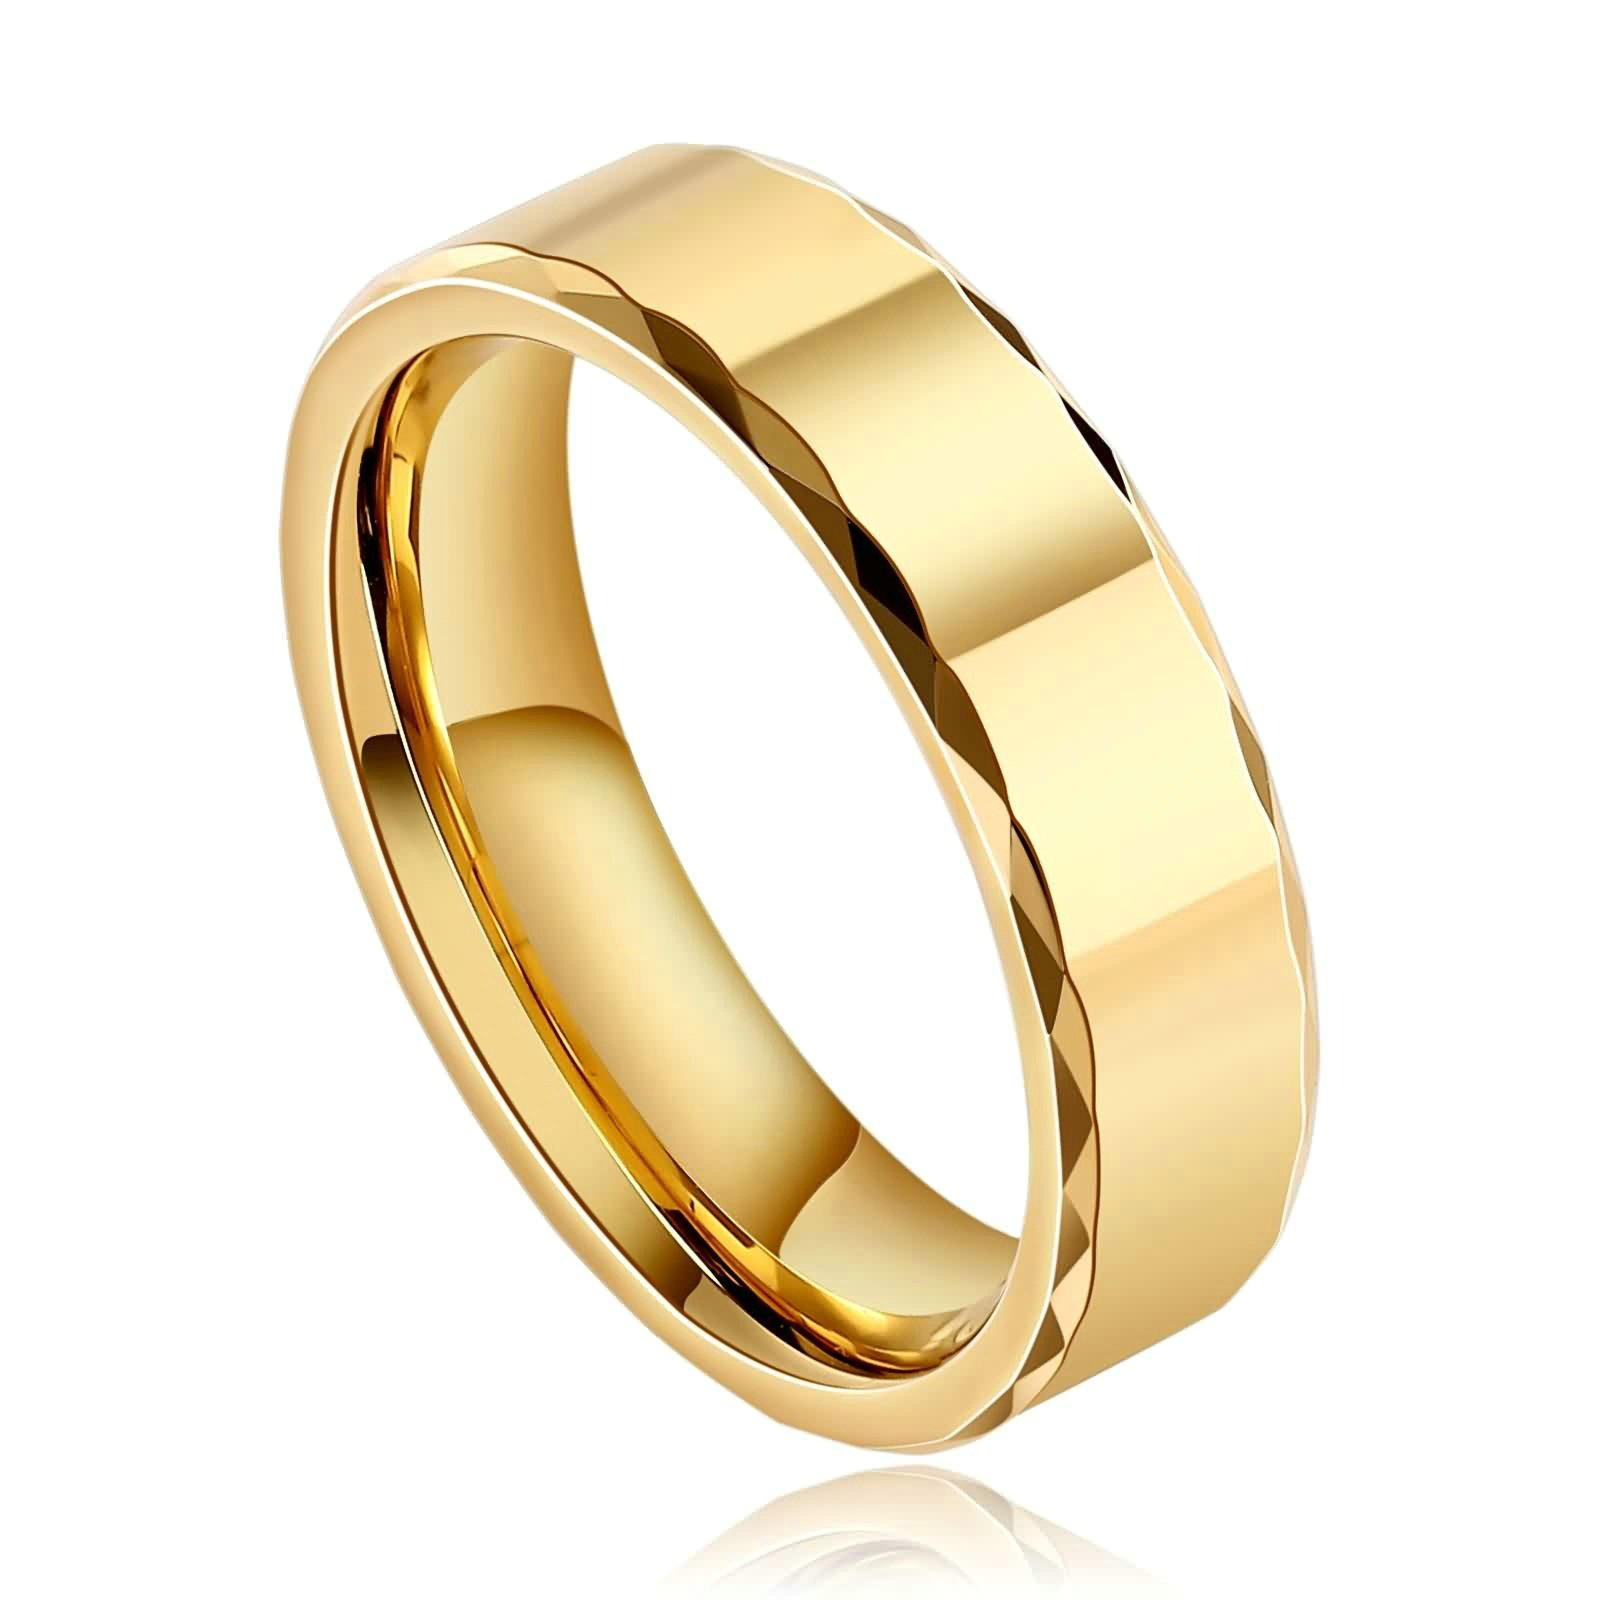 Beydodo Tungsten Rings Anniversary 6mm Gold Comfort Fit High Polished Biker Rings Size 8 Hip Hop Jewelry